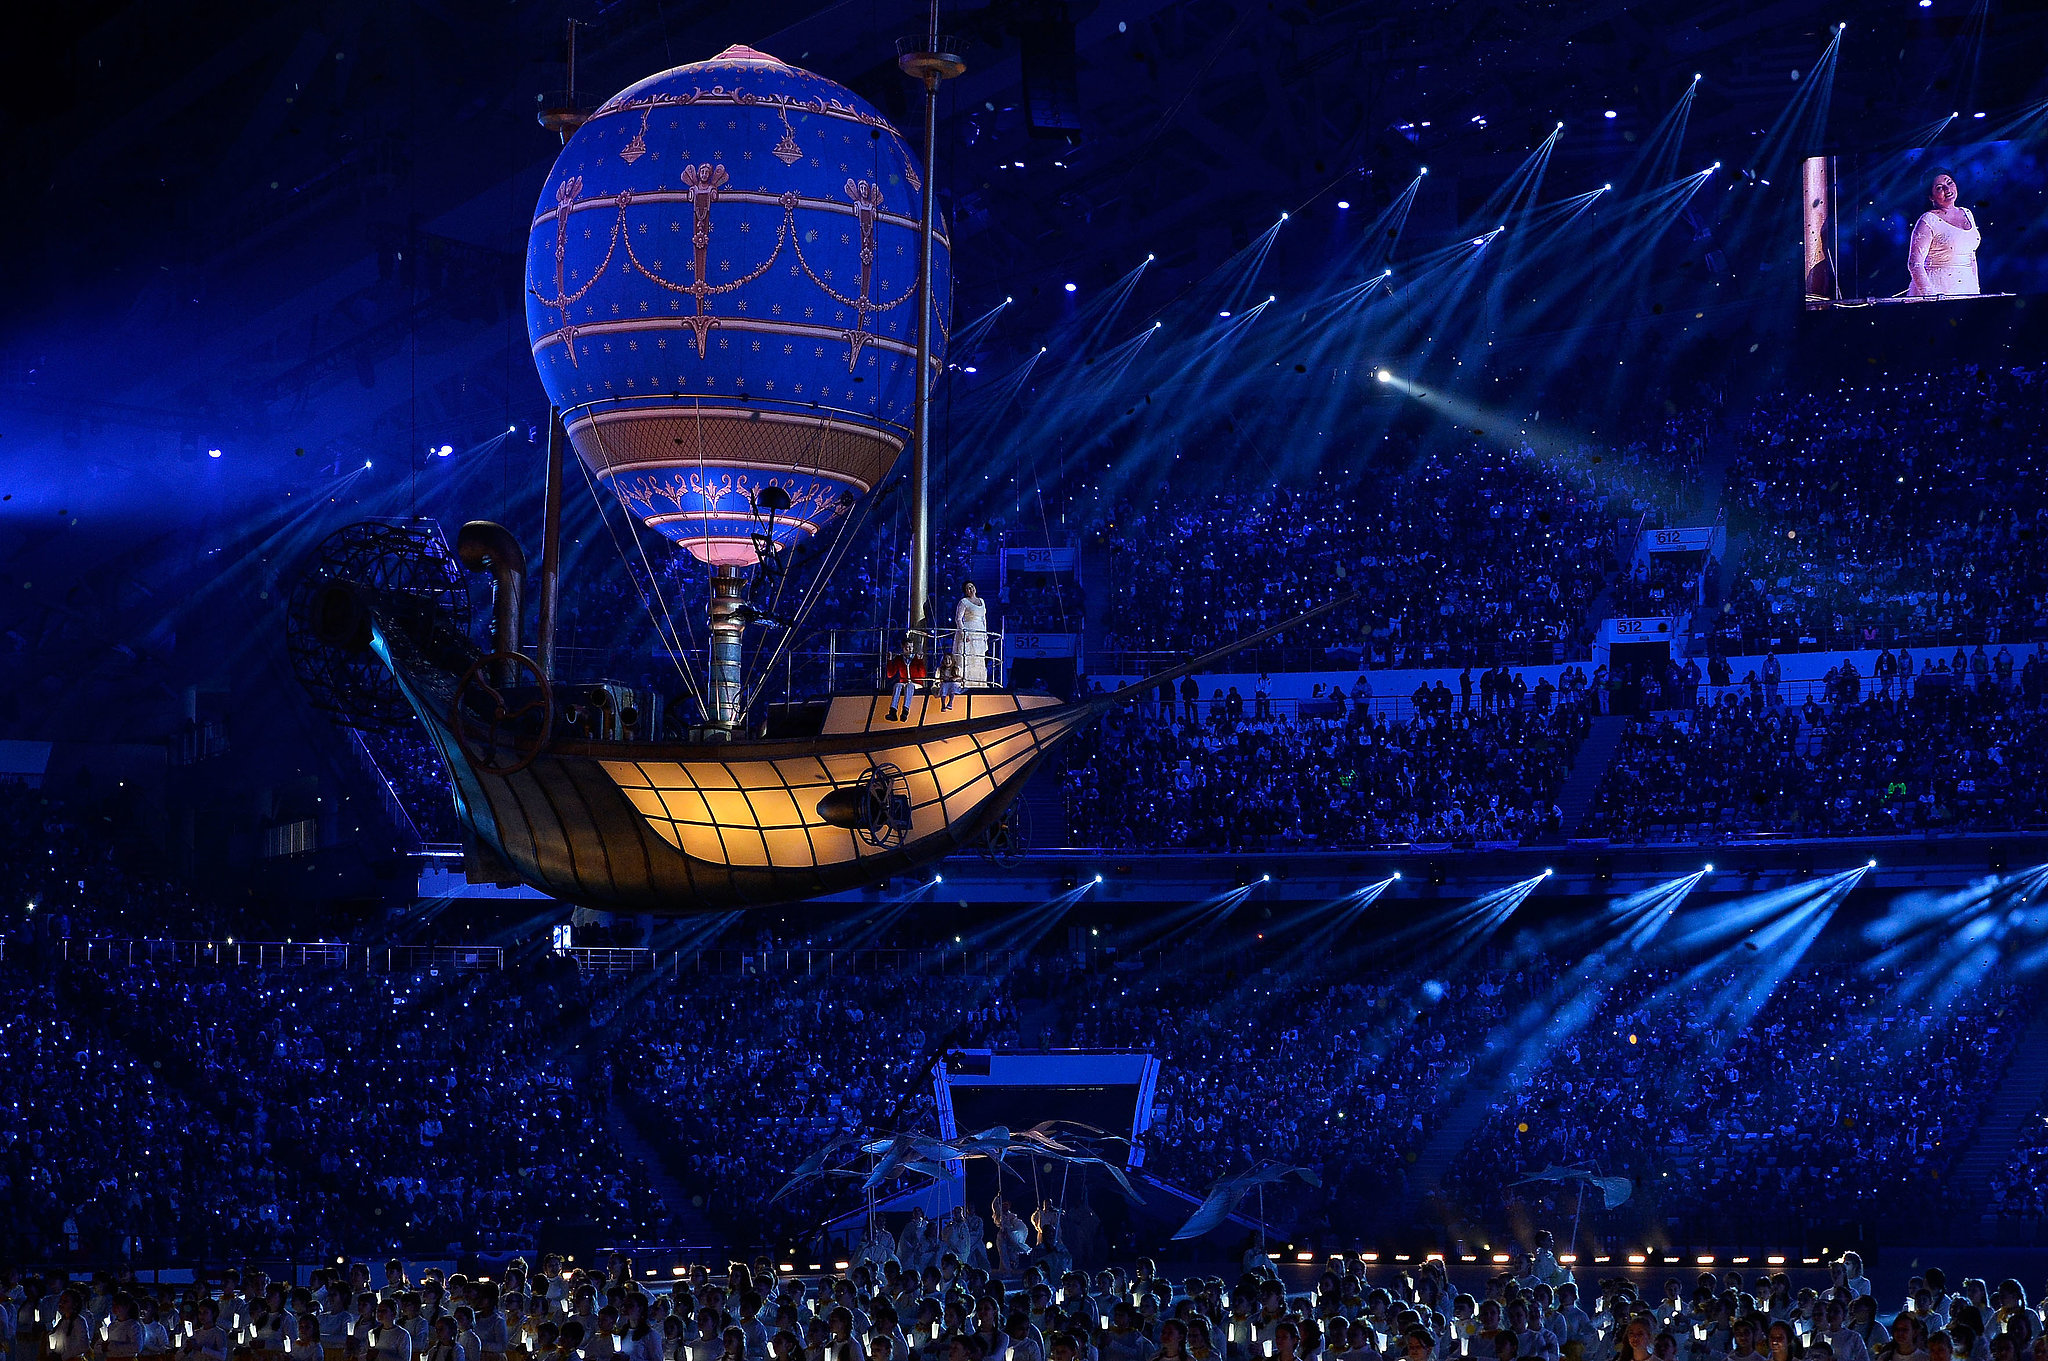 Russian singer Anna Netrebko performed from inside a glowing gondola.